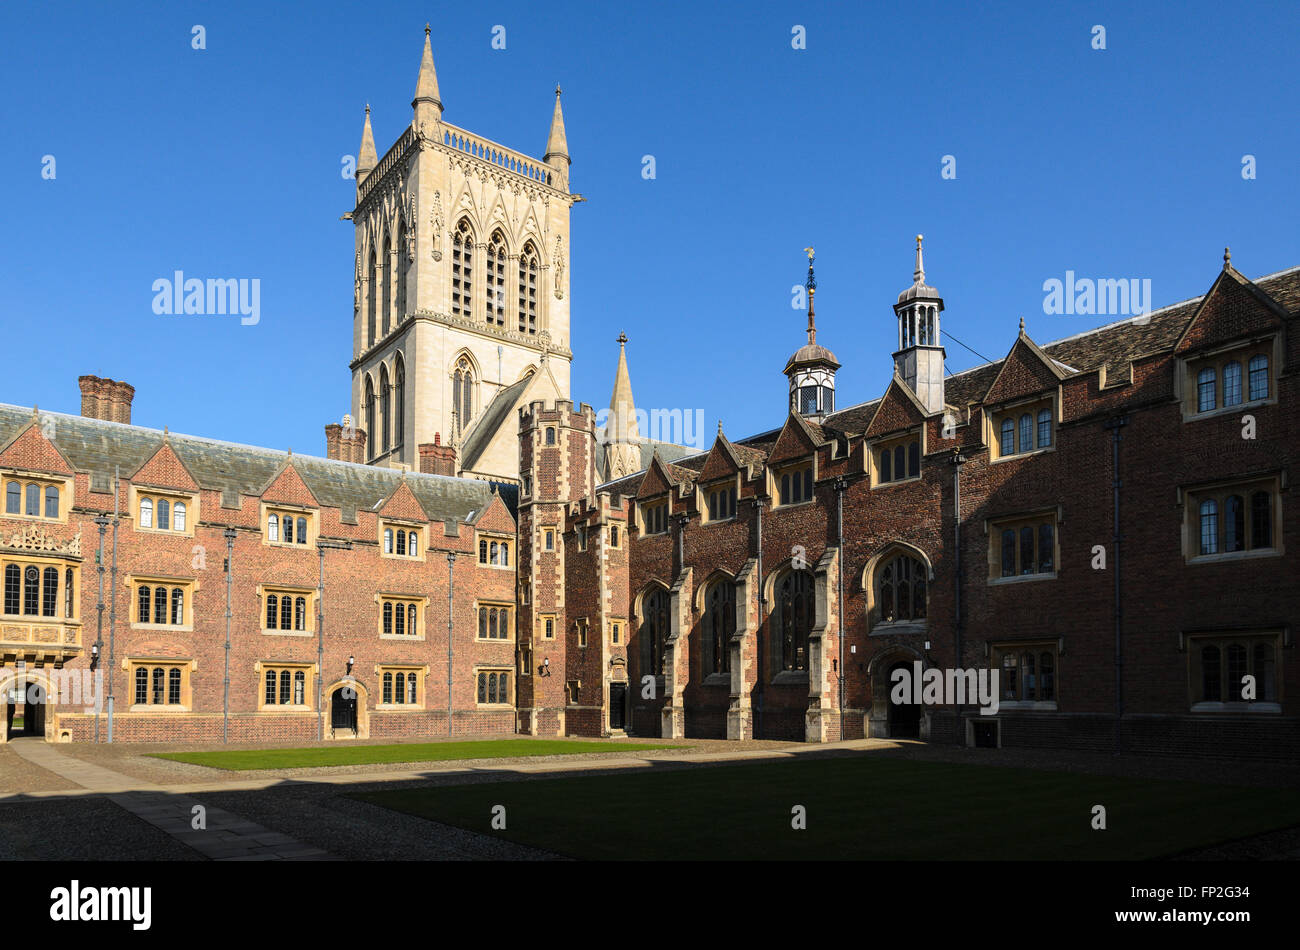 A quad at St Johns College, part of the University of Cambridge, England, United Kingdom.Stock Photo